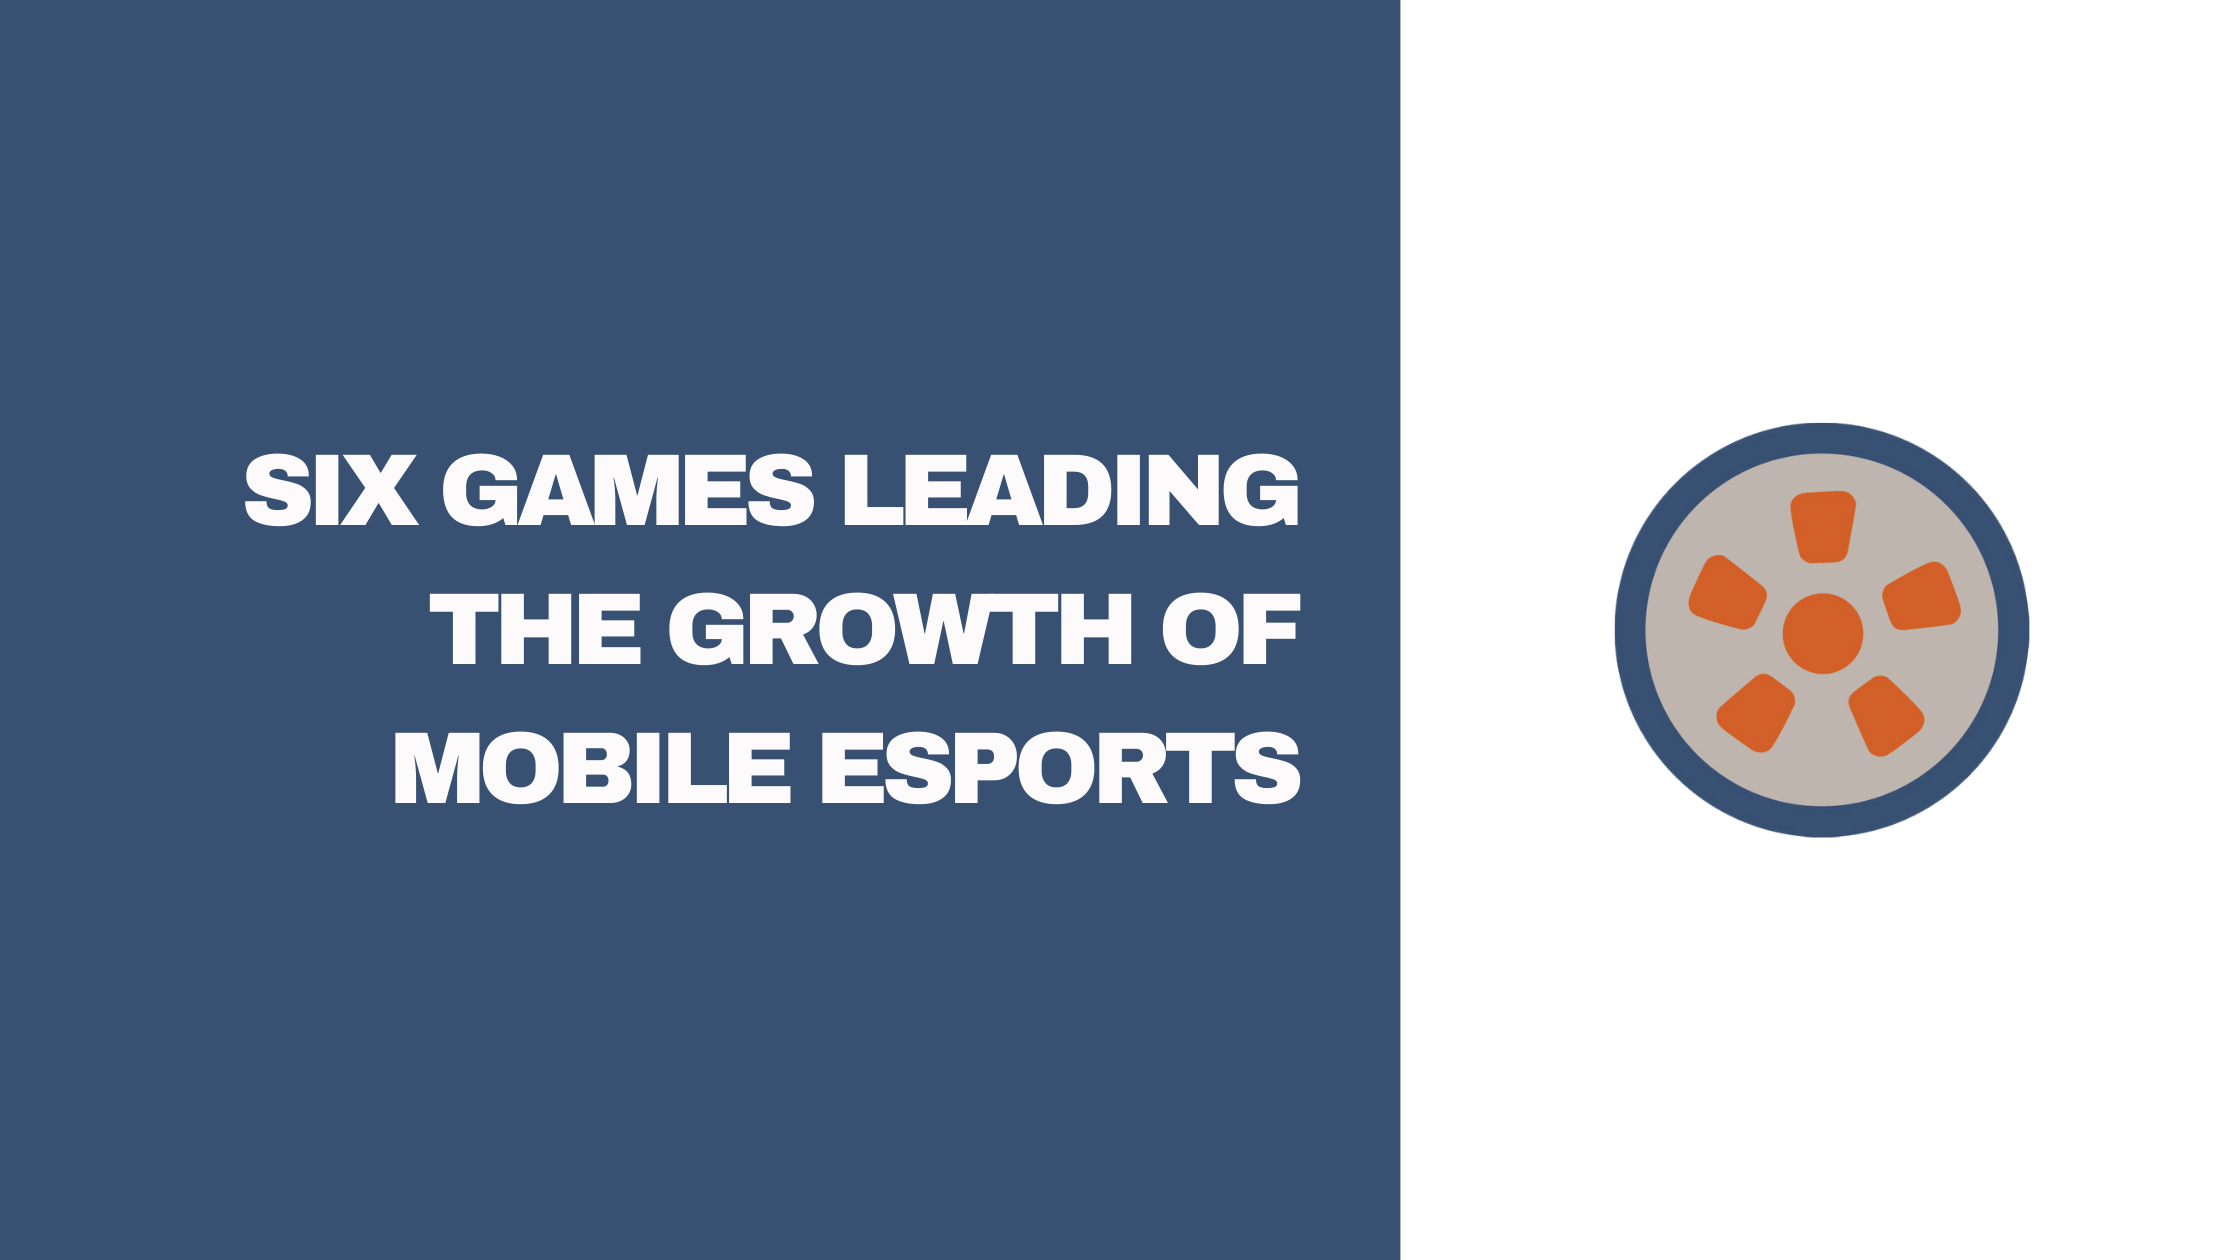 Six Games Leading the Growth of Mobile Esports